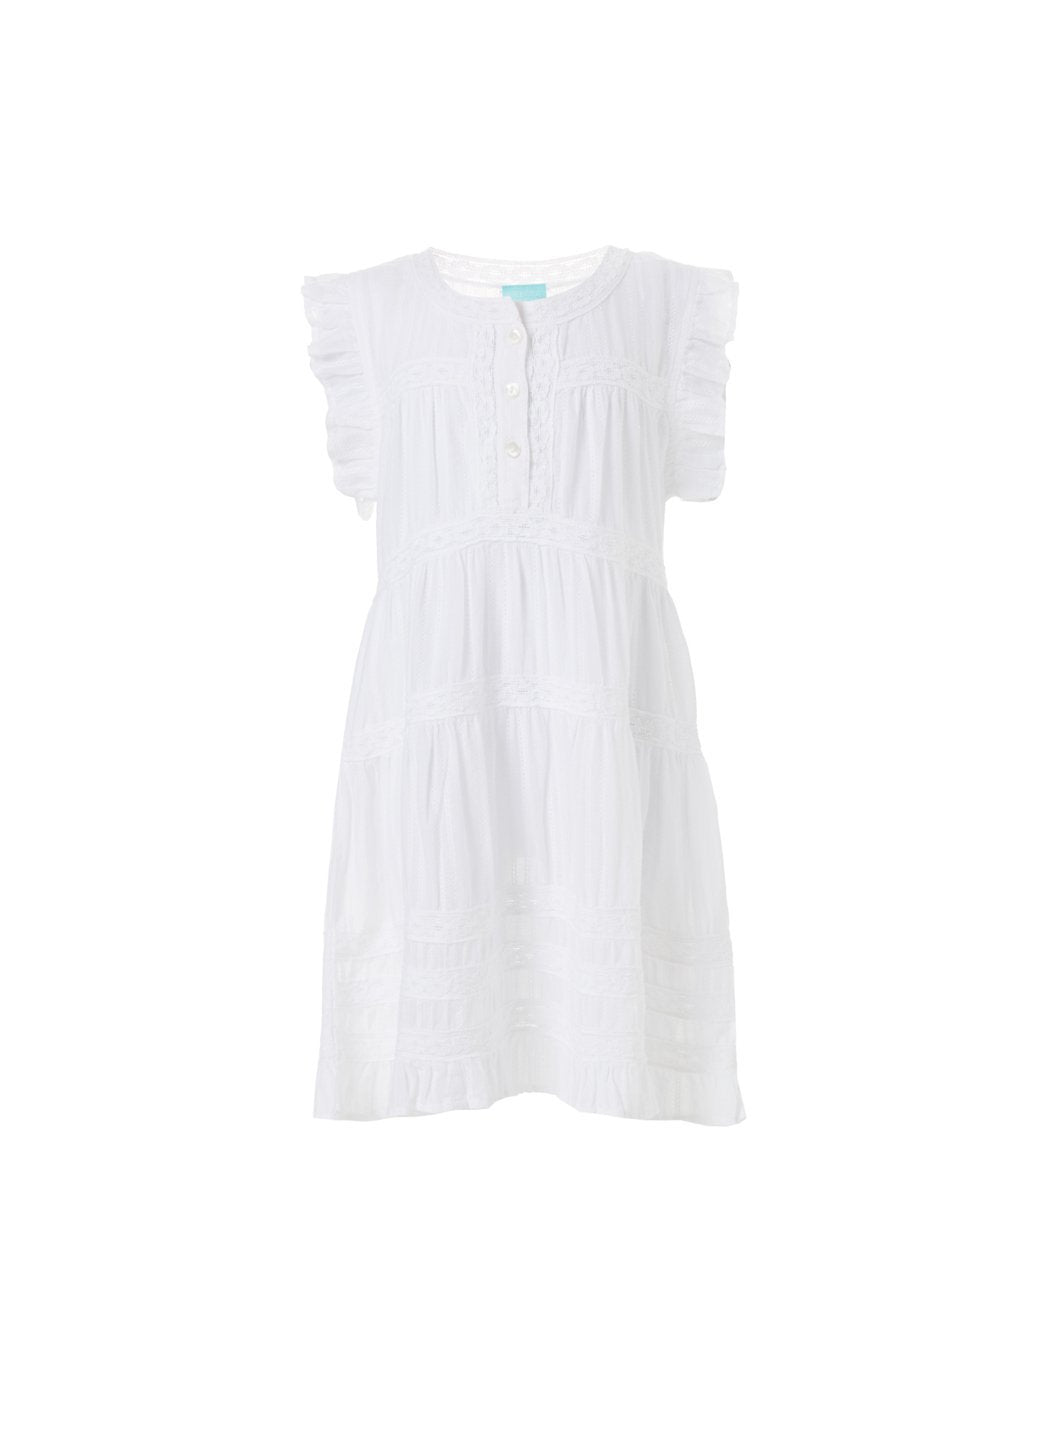 baby rebekah white smock dress 2019